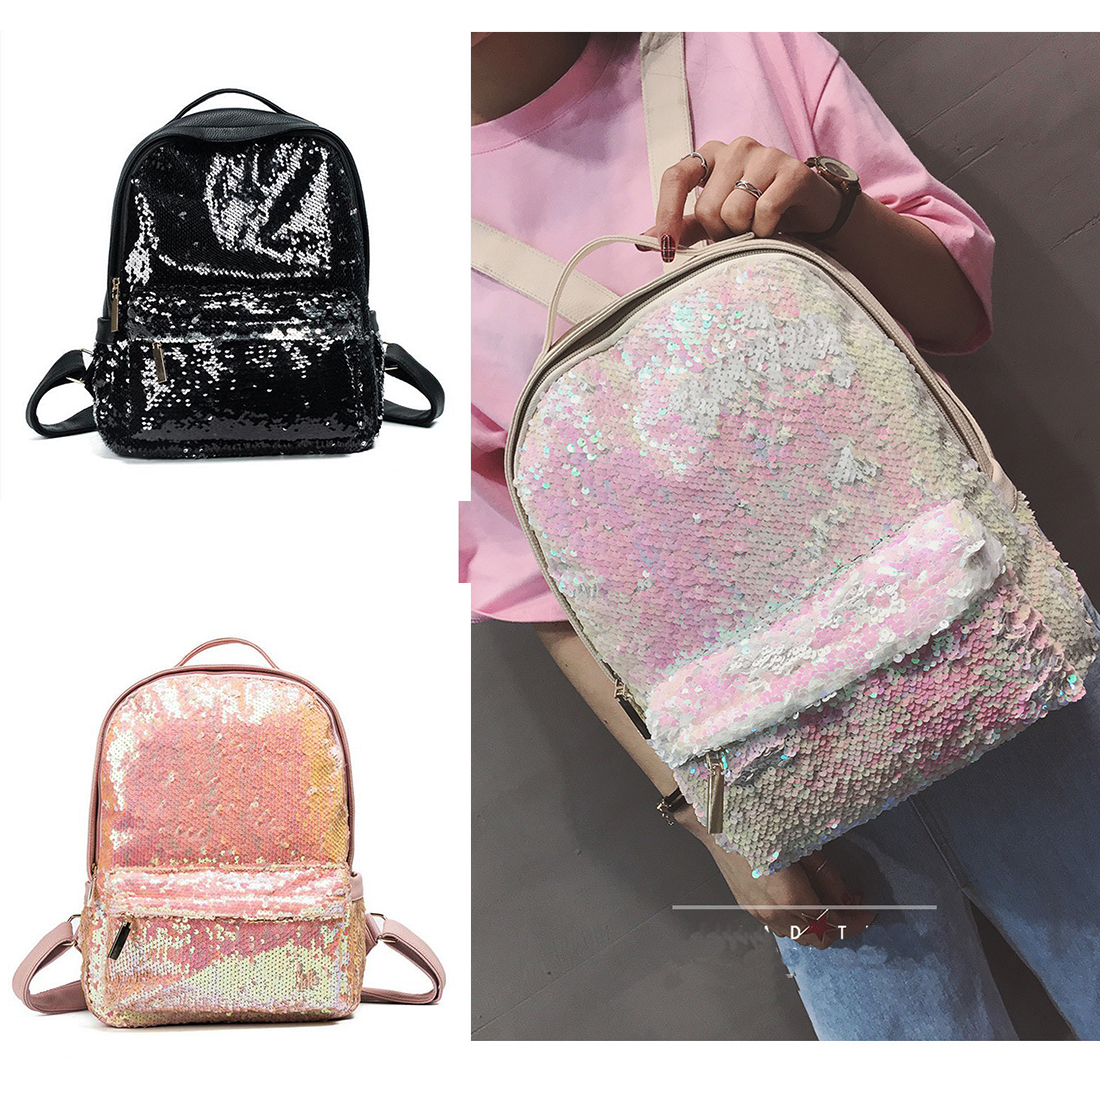 yjgjz house 2017 new arrival women bag pu leather sequins backpack